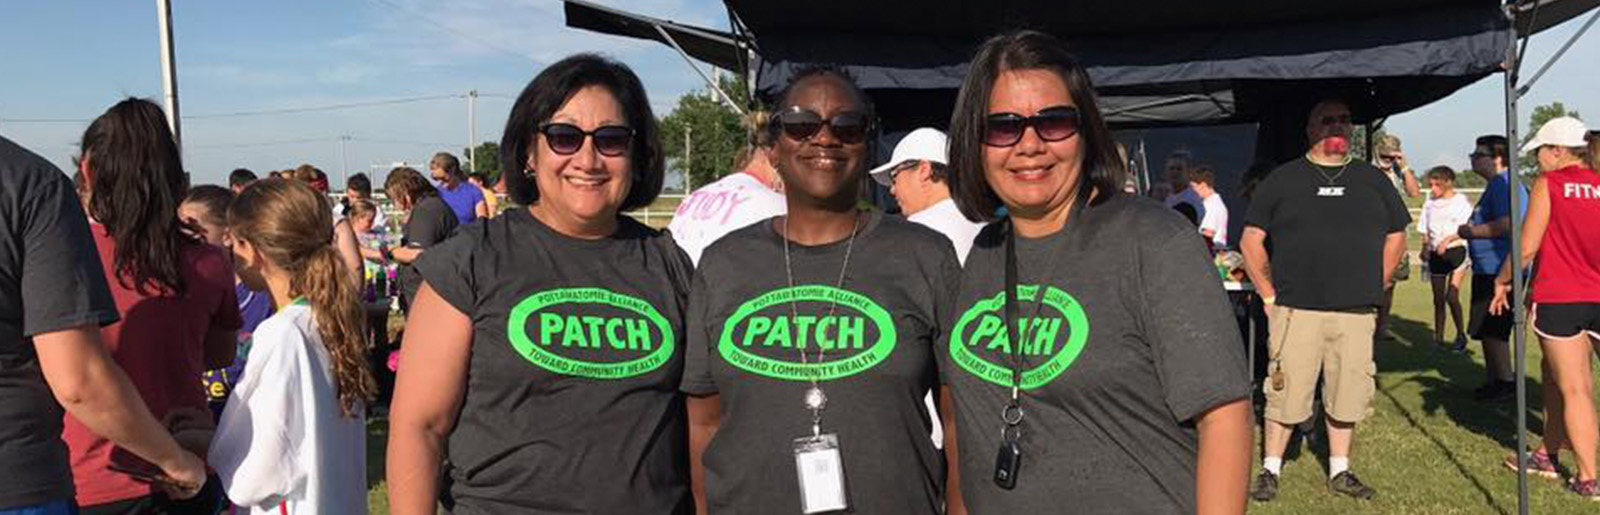 PATCH members